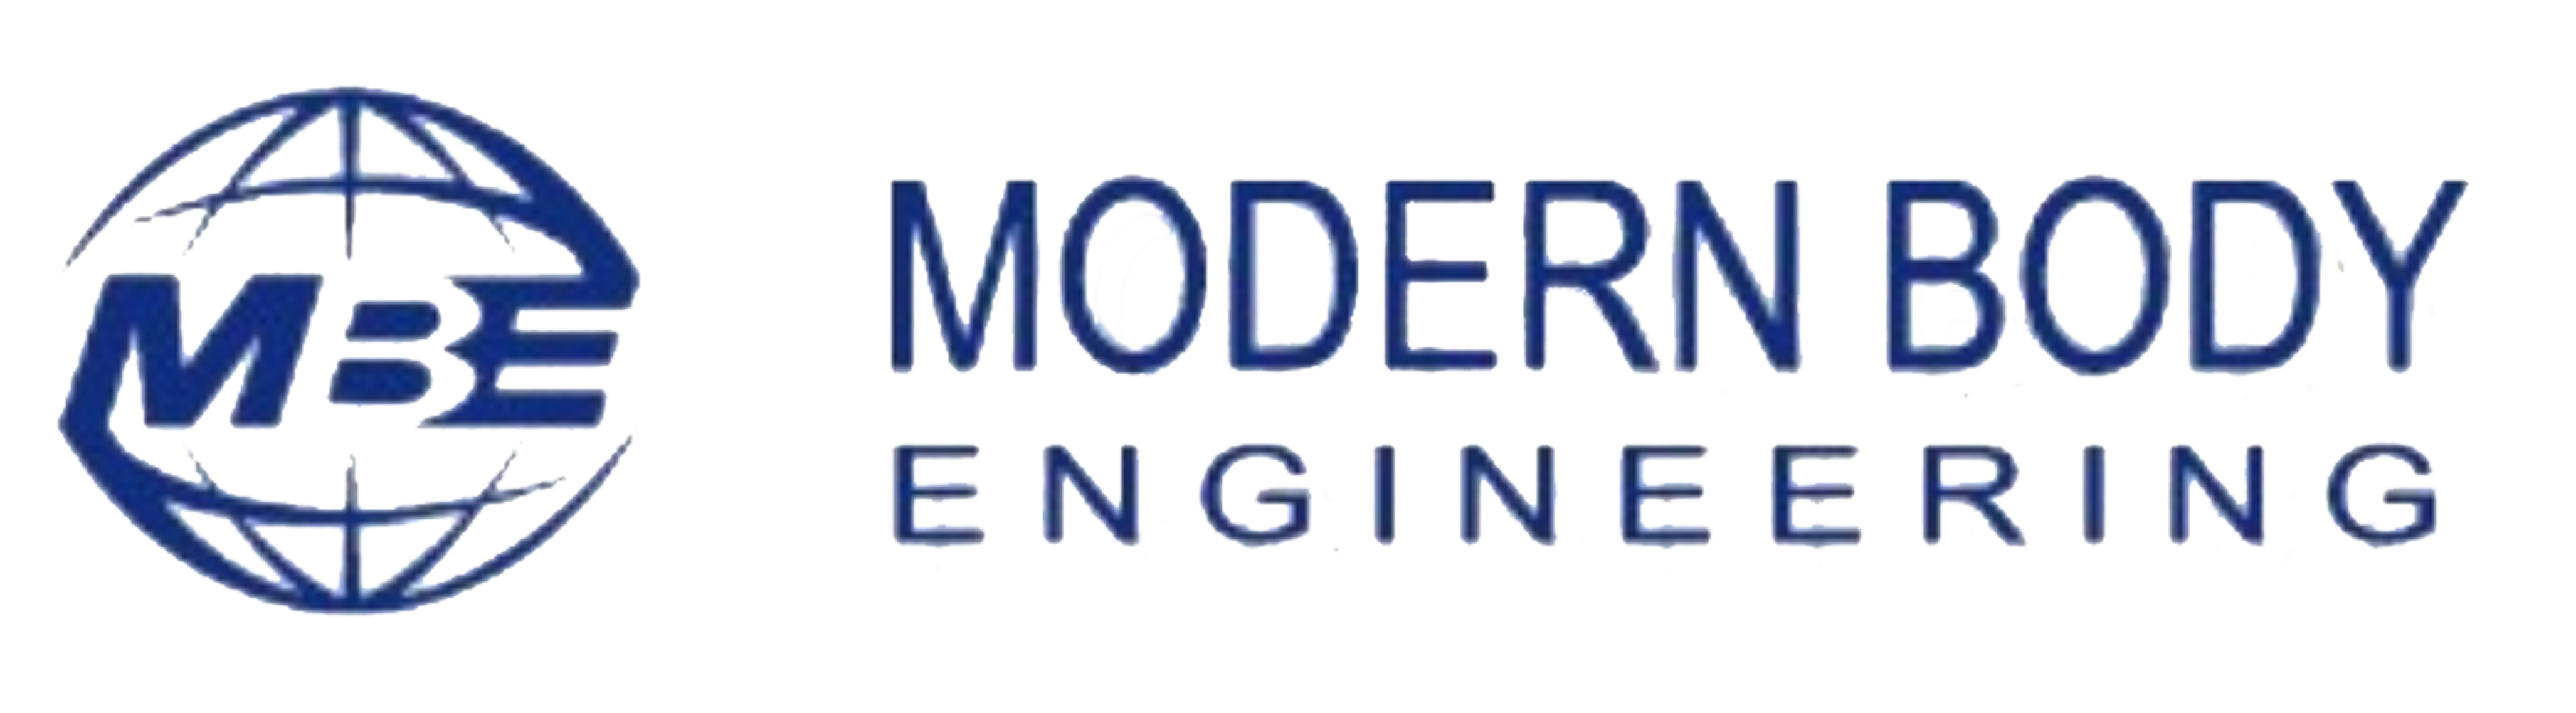 Modern Body Engineering